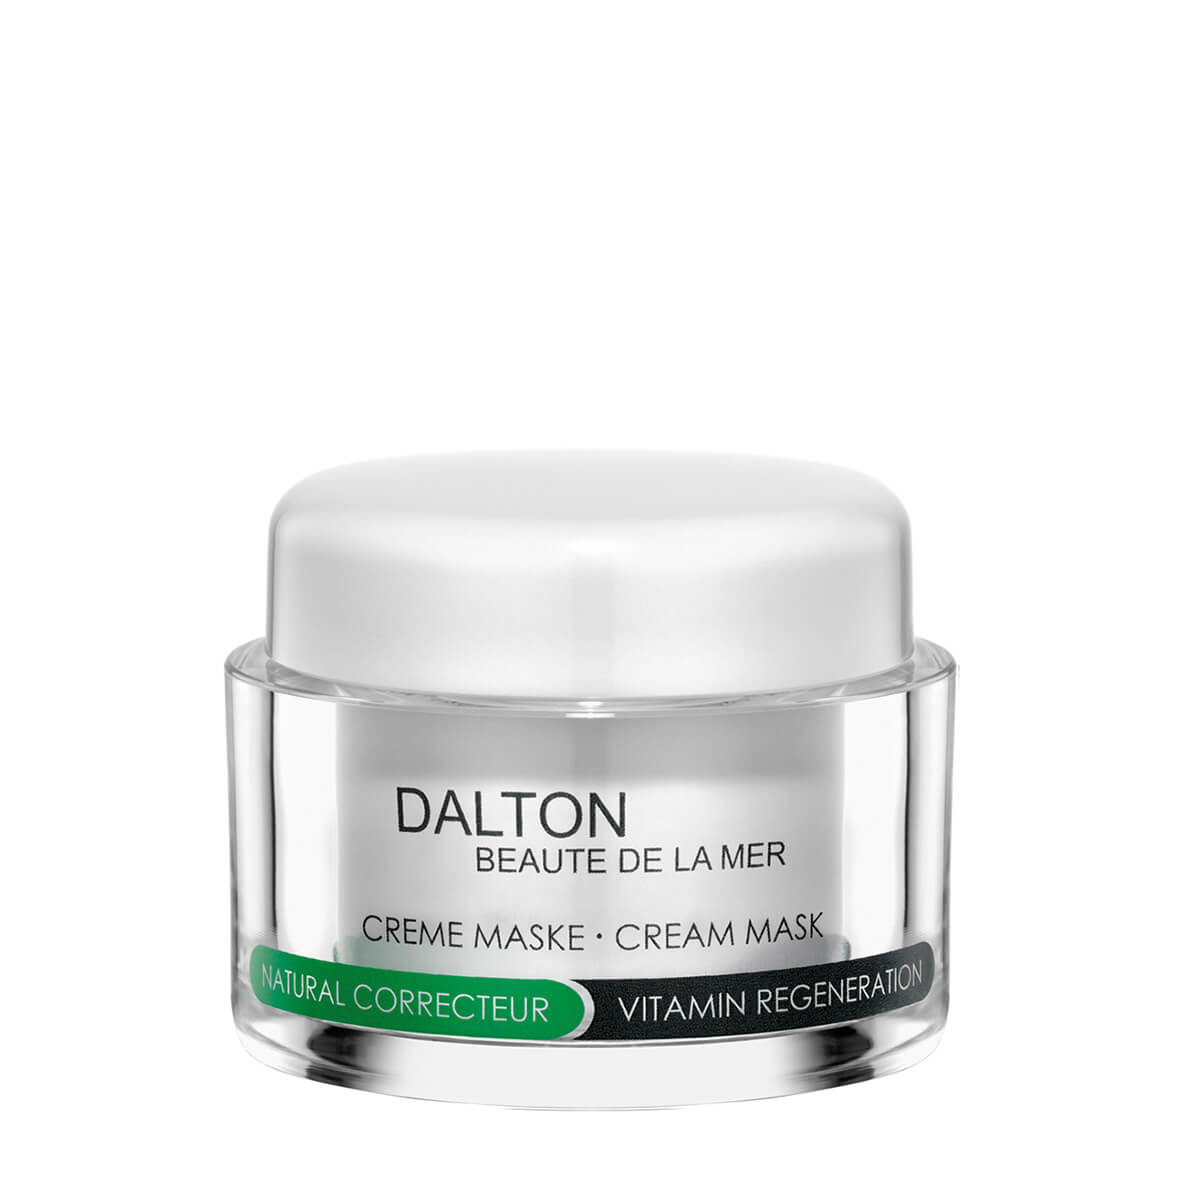 Natural Correcteur Cream Mask 50ml., crema masca, Dalton Marine Cosmetics, Era Cosmetics